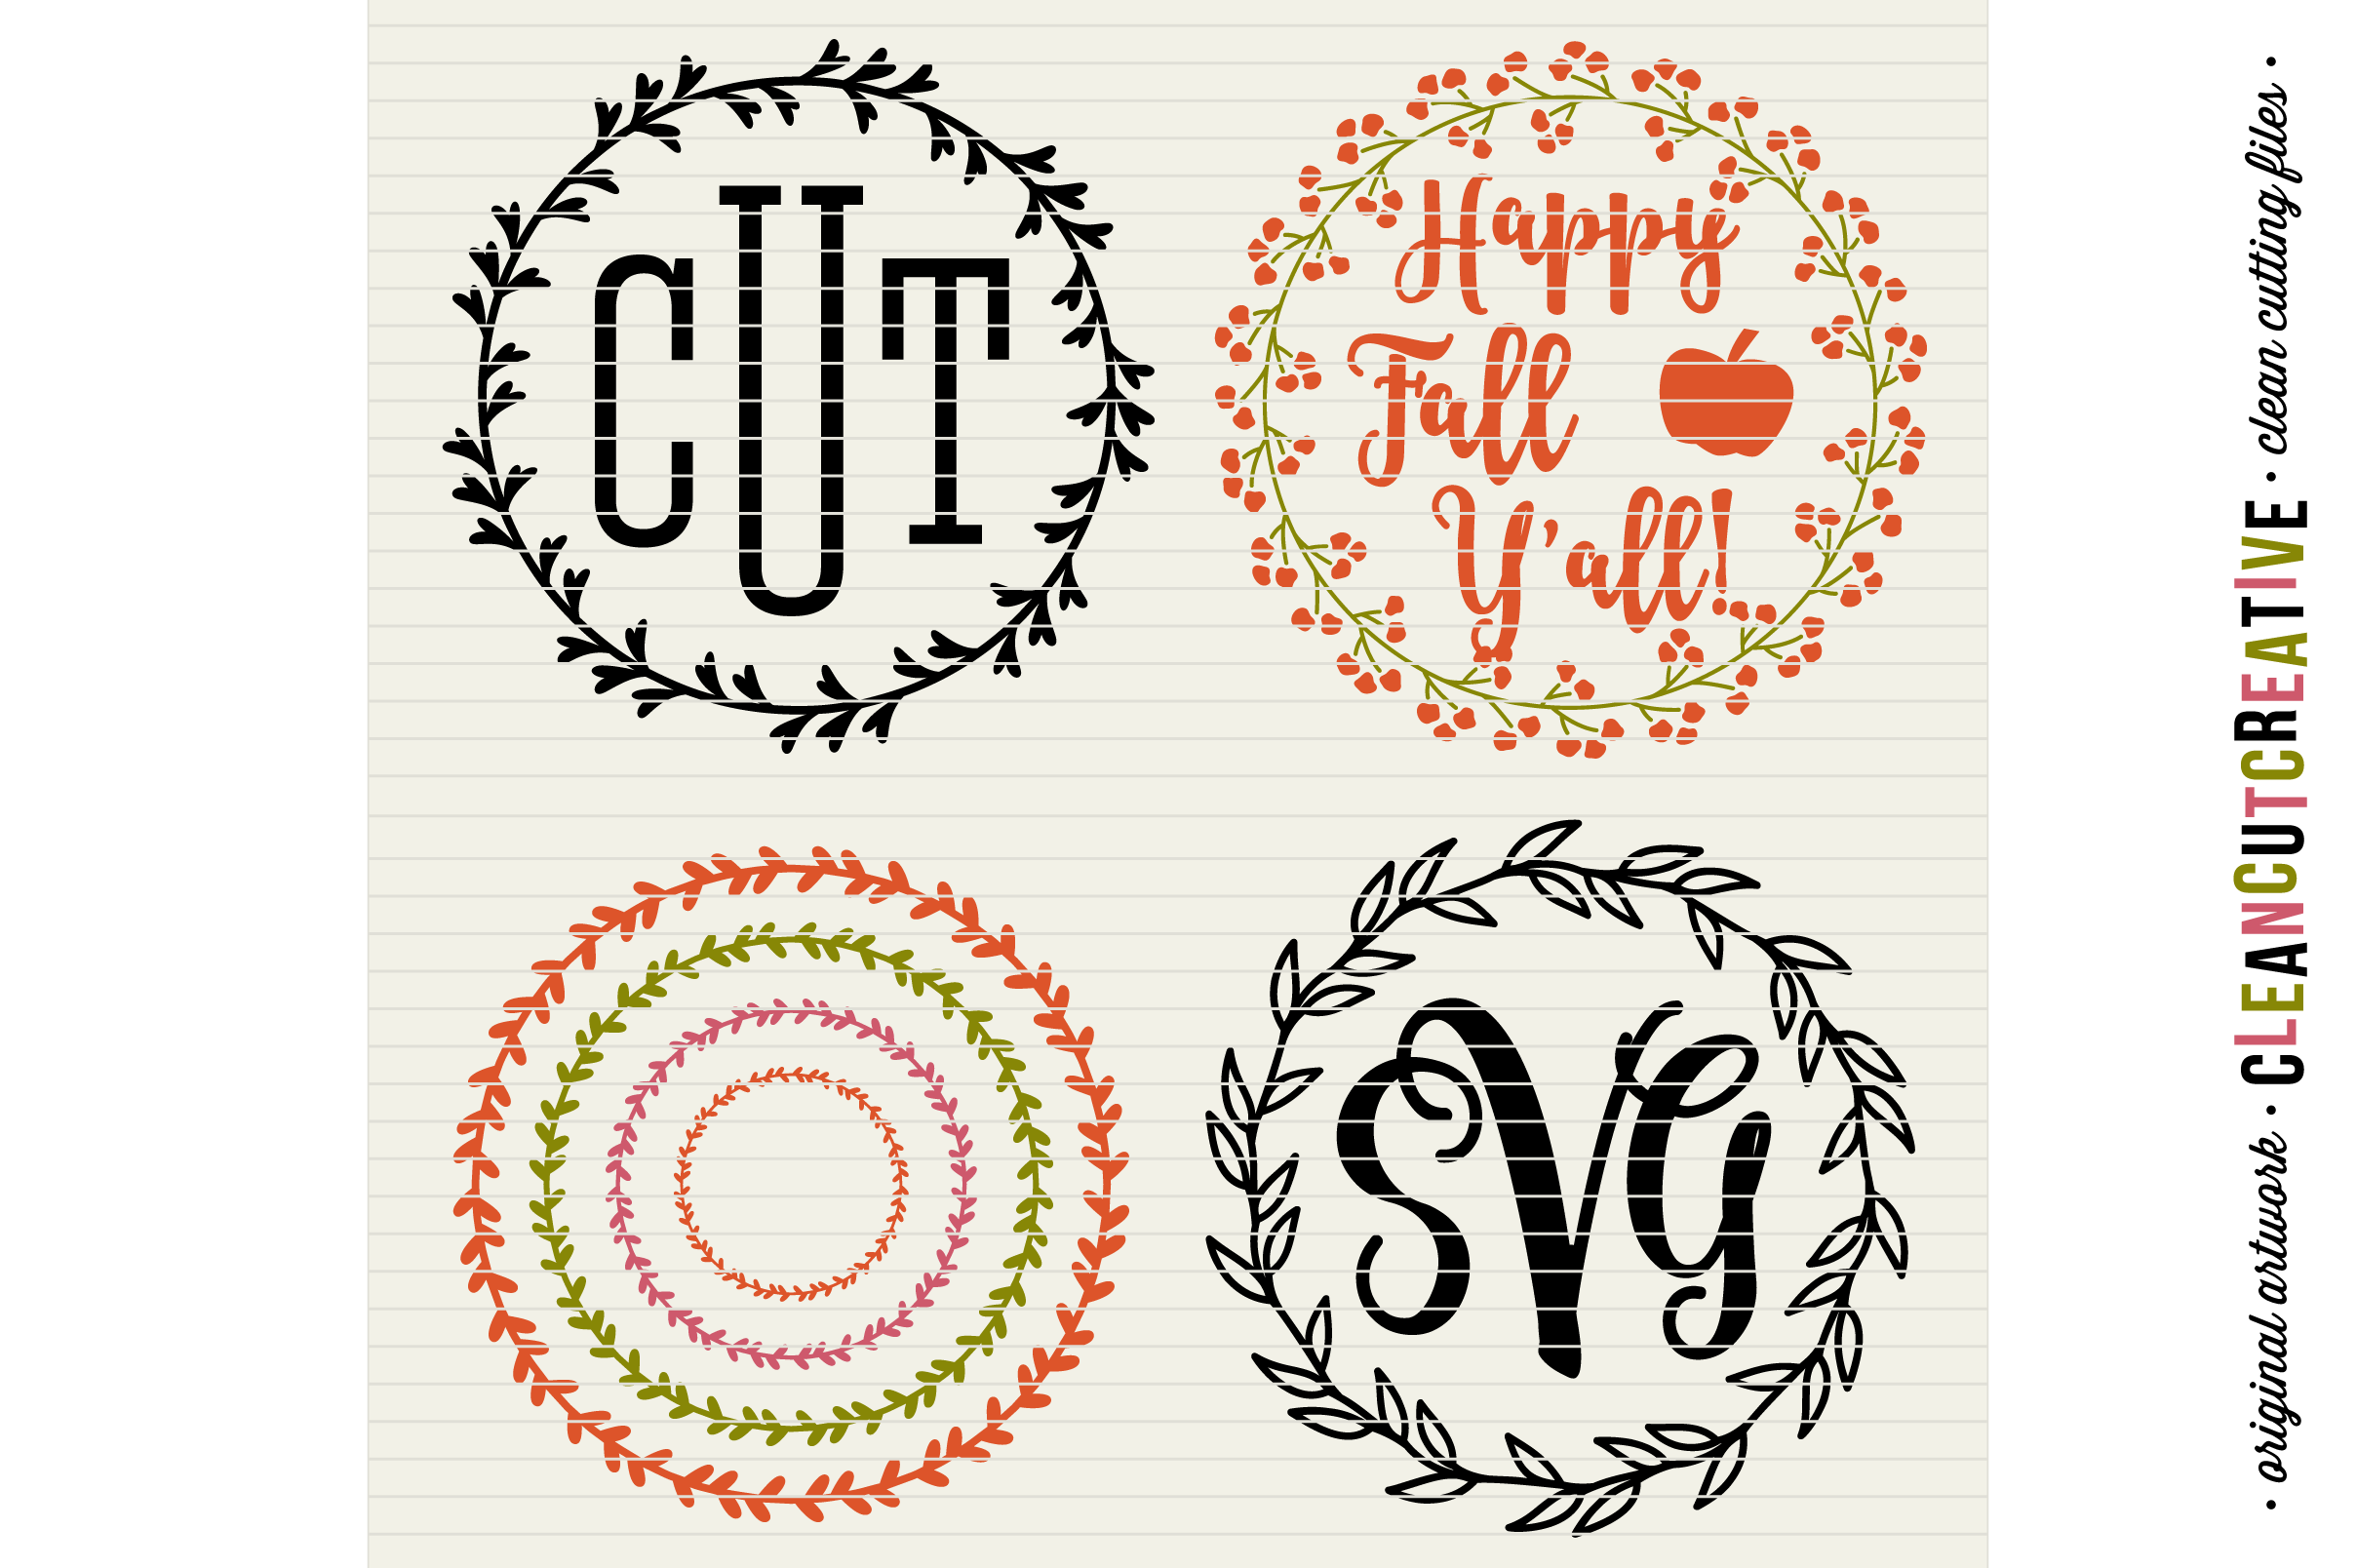 15 svg FLORAL WREATHS floral leaf circleframes - SVG DXF EPS PNG - for Cricut and Silhouette Cameo - clean cutting digital files example image 6